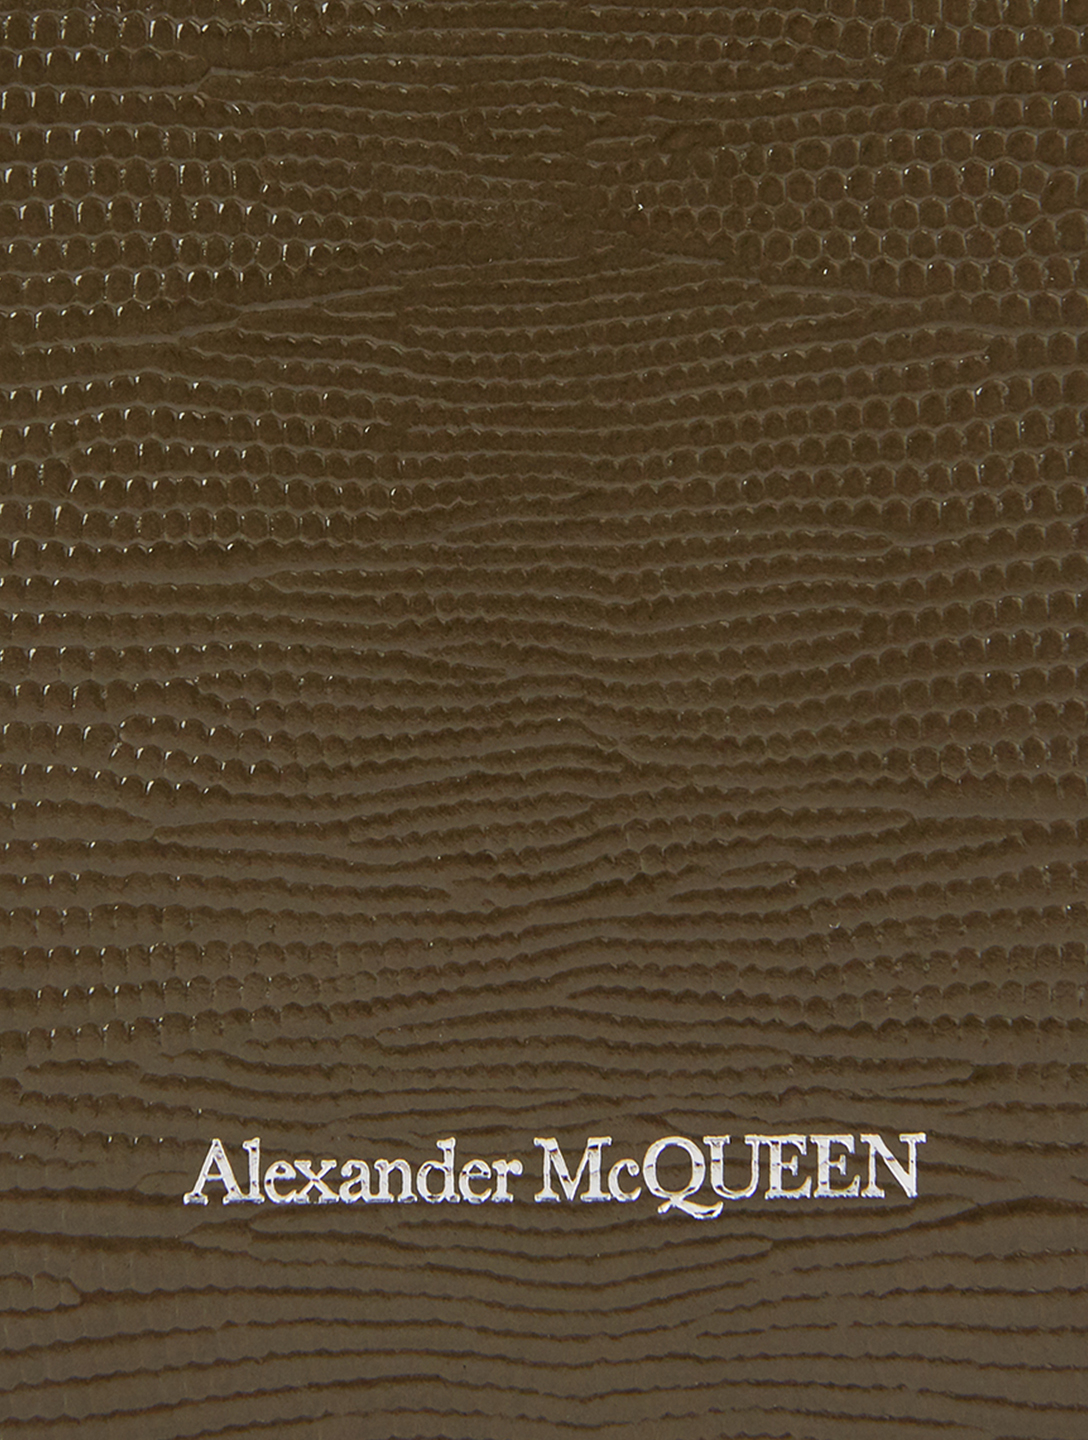 ALEXANDER MCQUEEN Small Skull And Stud Lizard-Embossed Leather Bag Women's Green